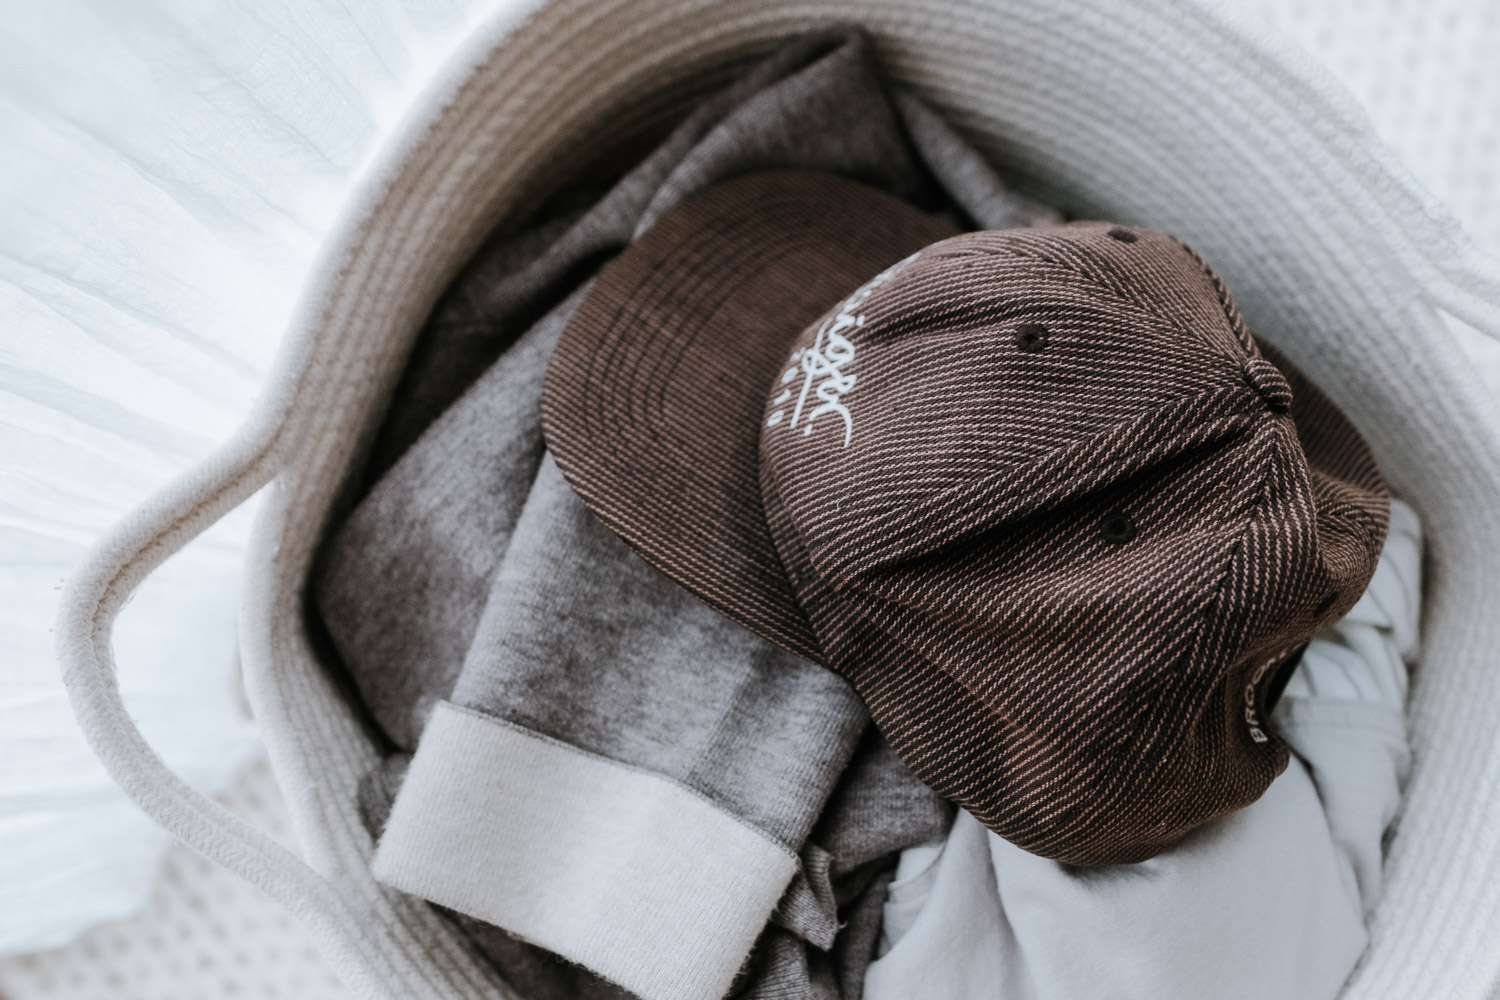 A baseball cap sitting on a pile of laundry in a basket